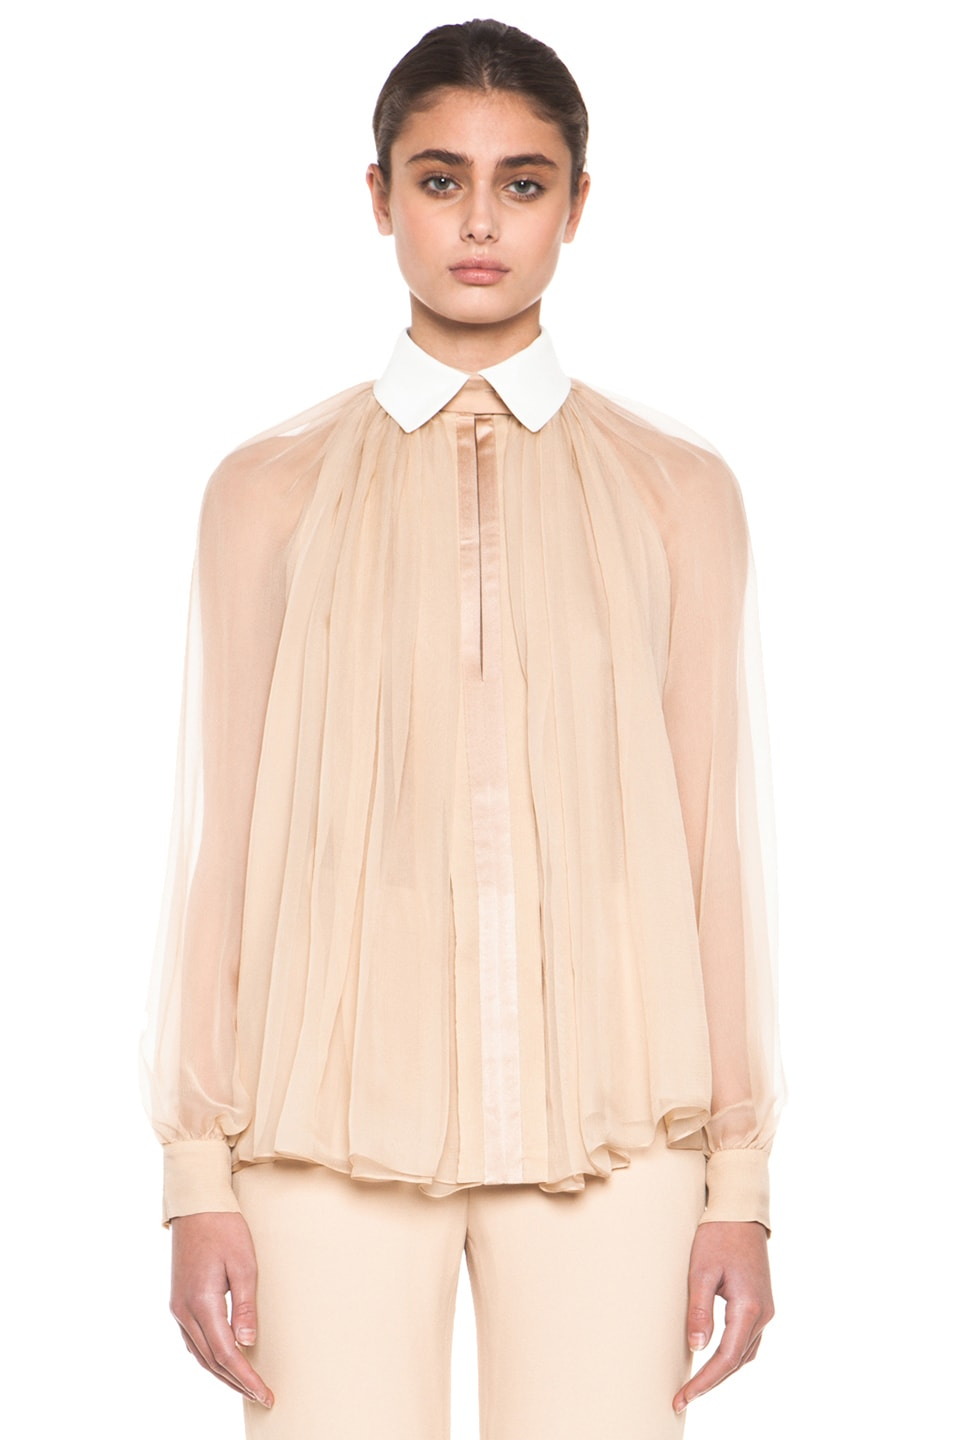 Navy Bow Blouse Chloé Very Cheap Outlet Best Prices Footaction Cheap Price Discount Best Seller F687GwCza